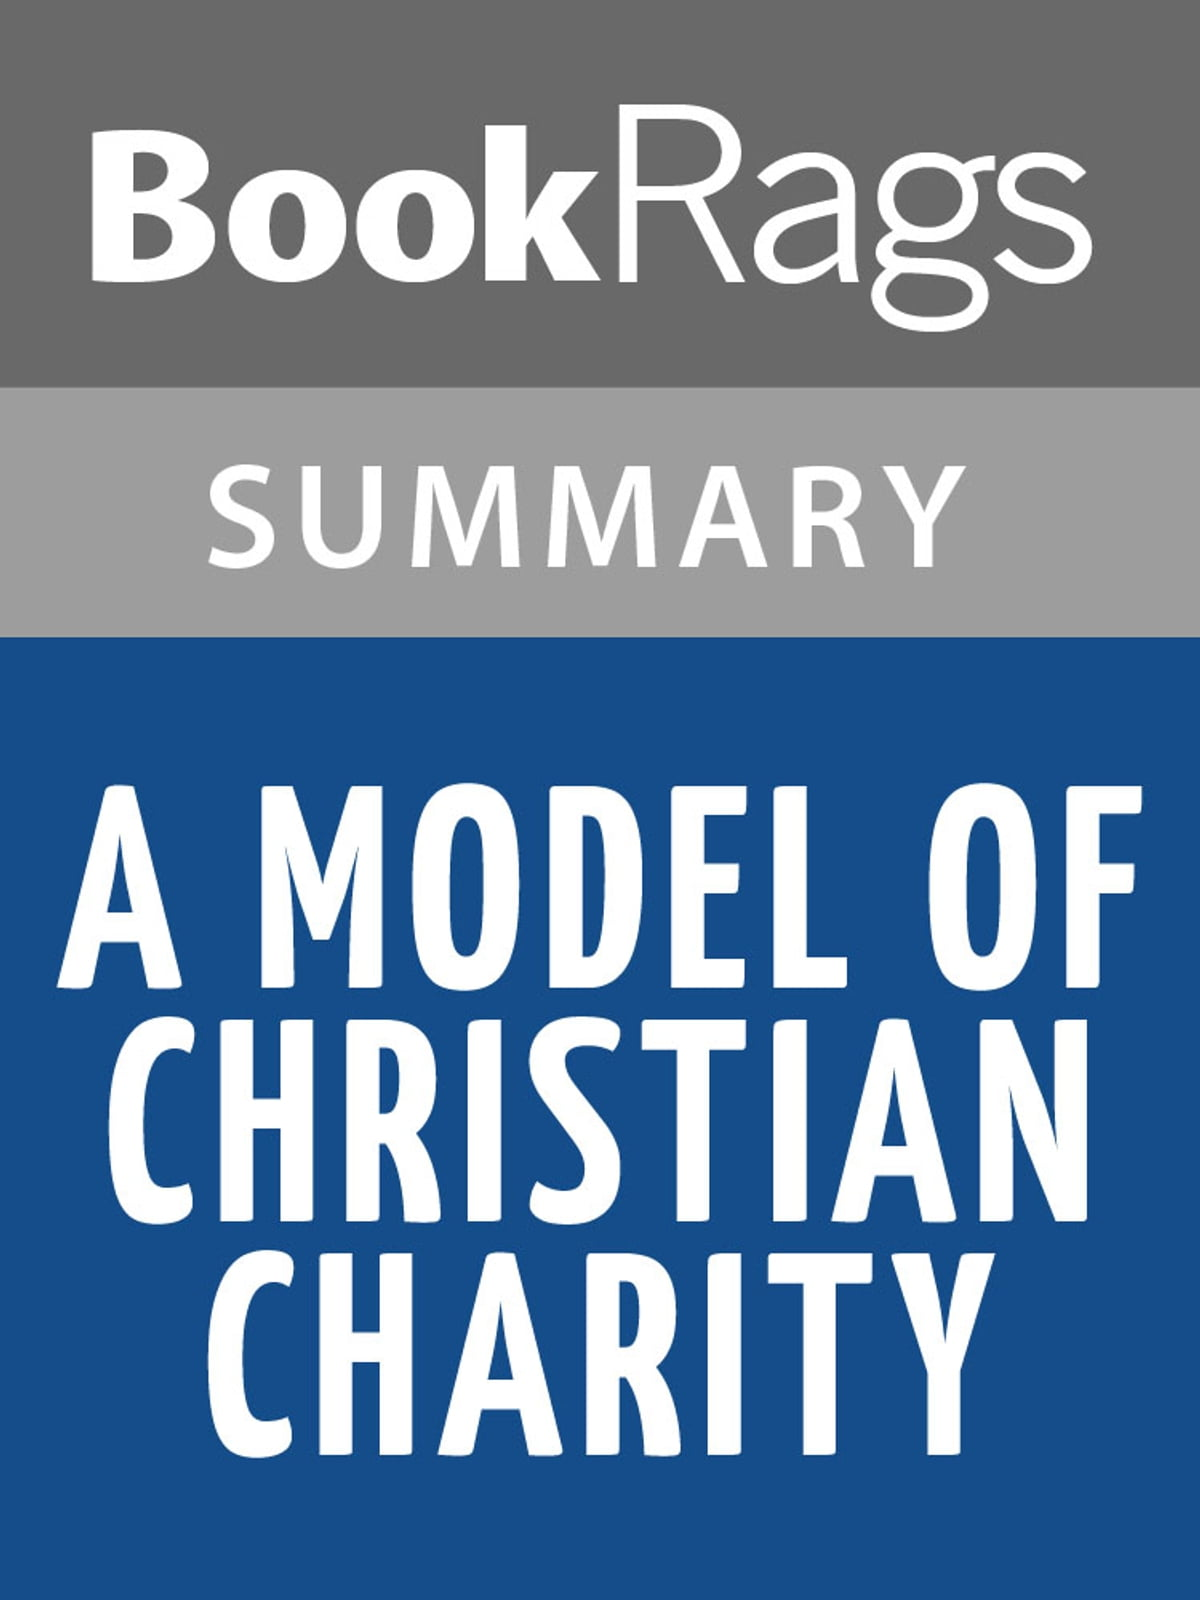 a model of christian charity text